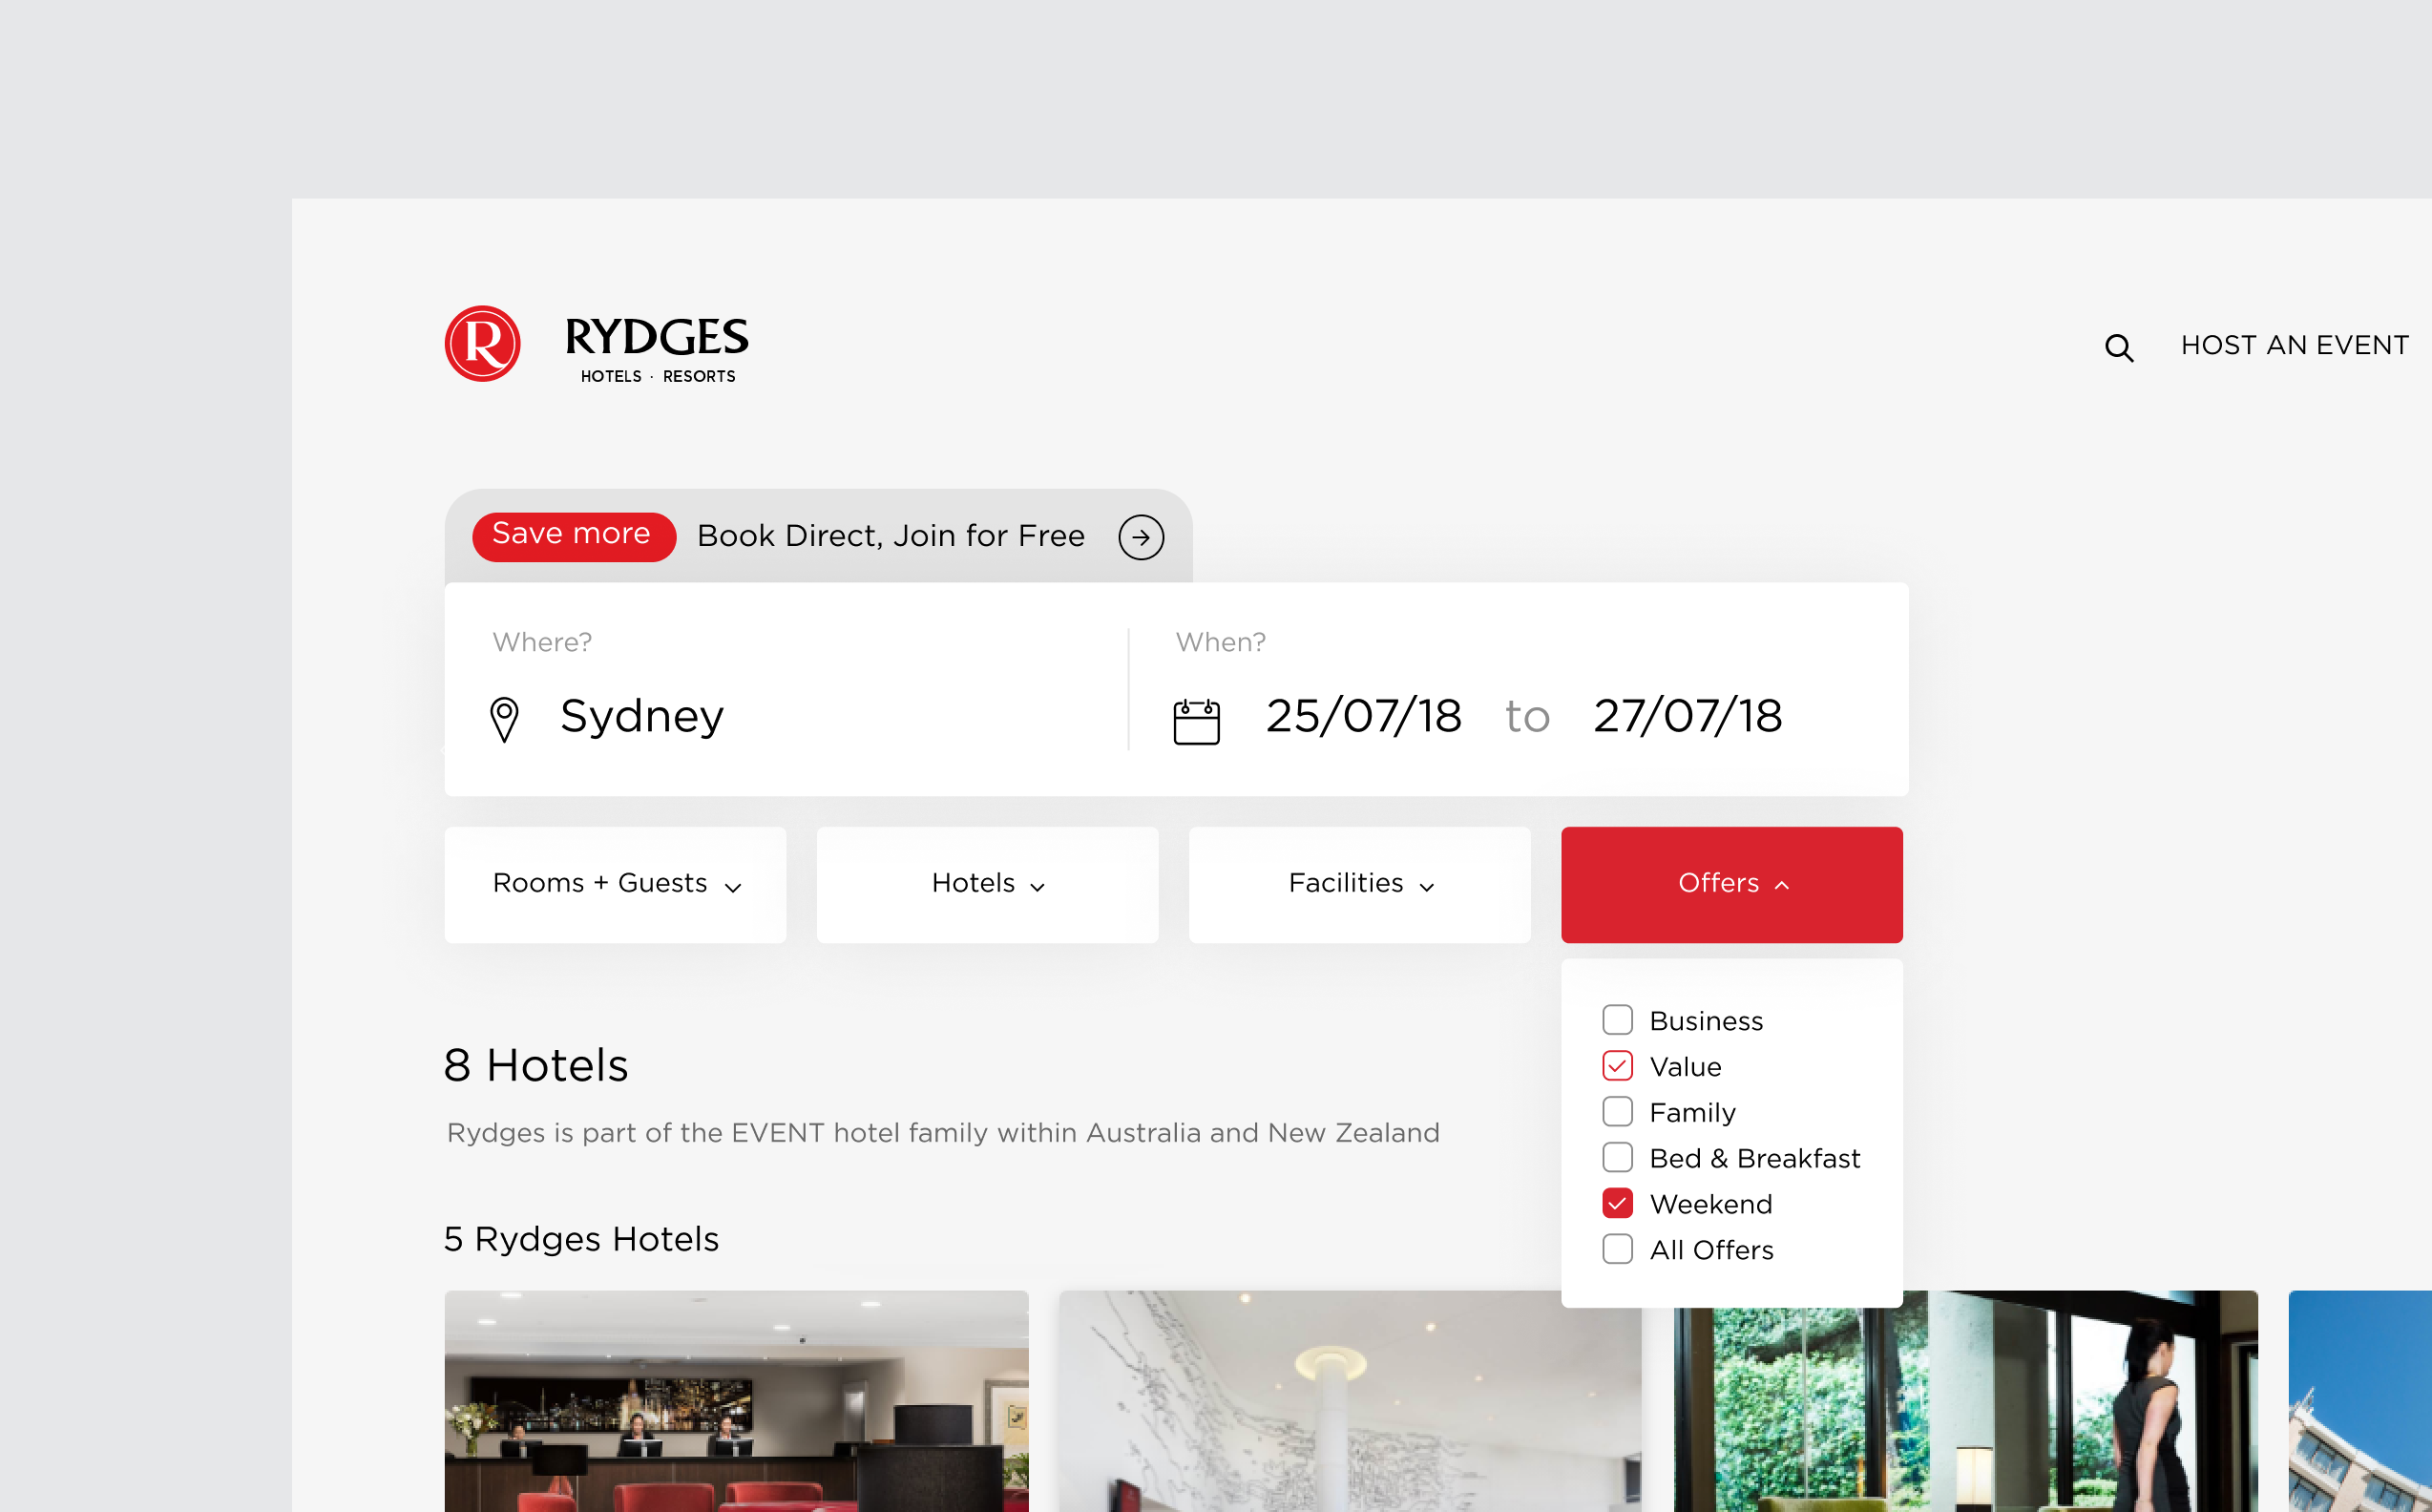 EVENT Rydges new website design, showcasing streamlined desktop hotel search